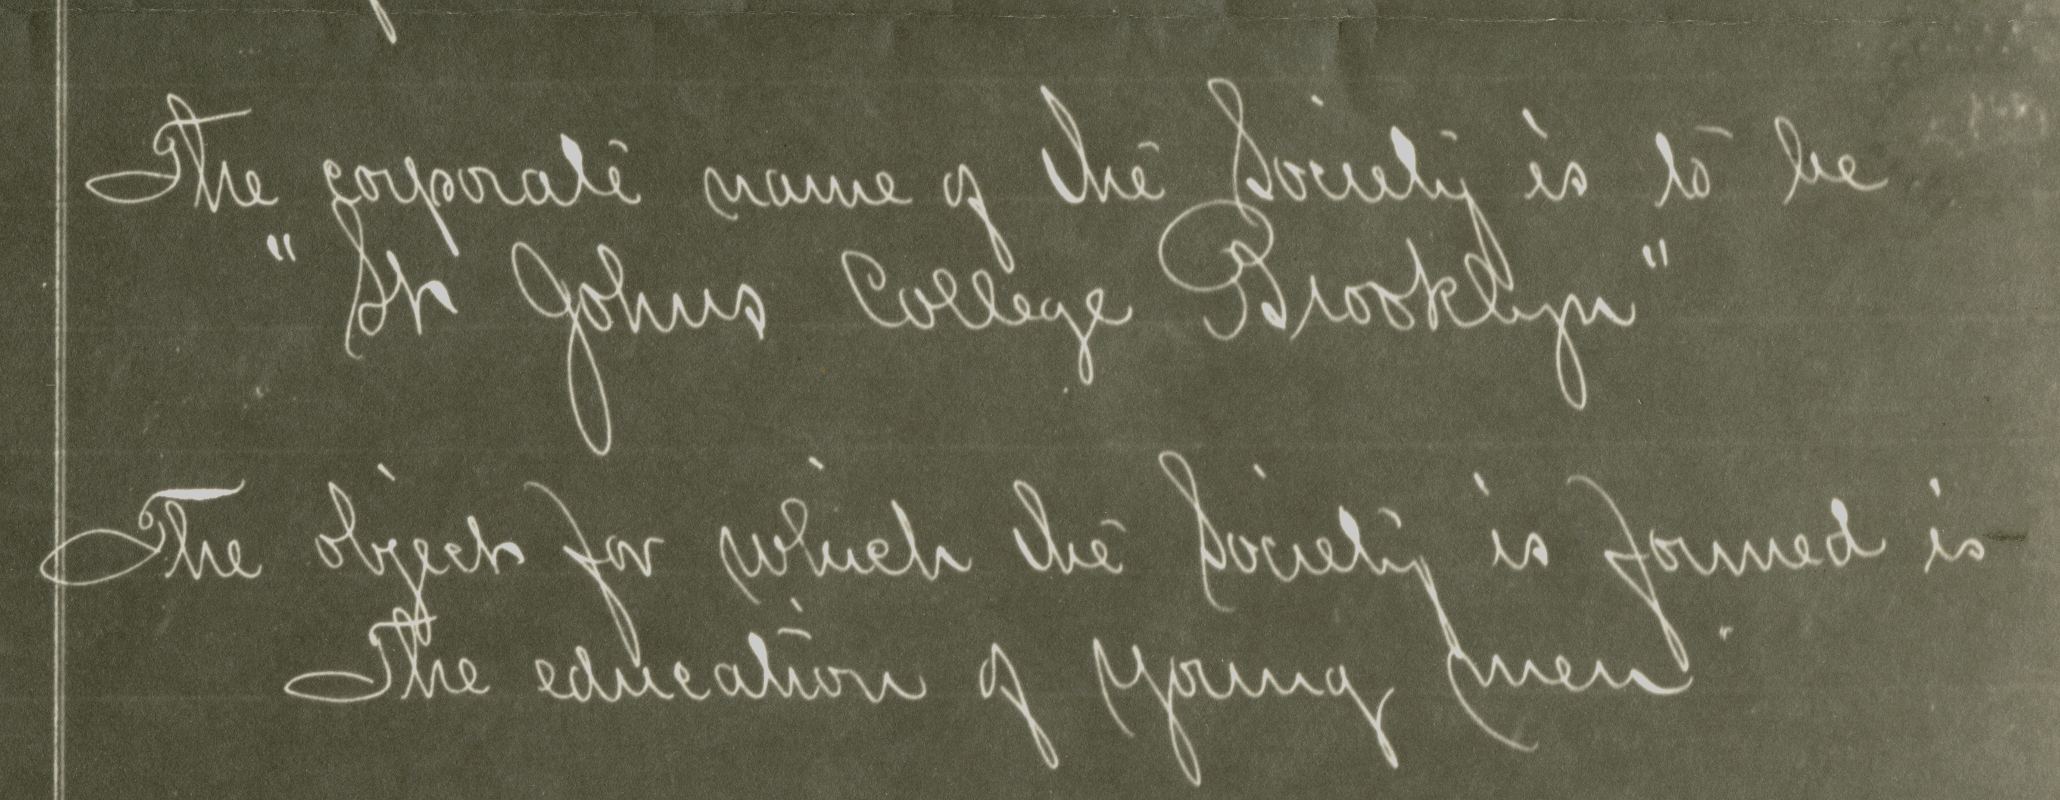 Excerpt from the charter of St. John's College, September 1, 1871.